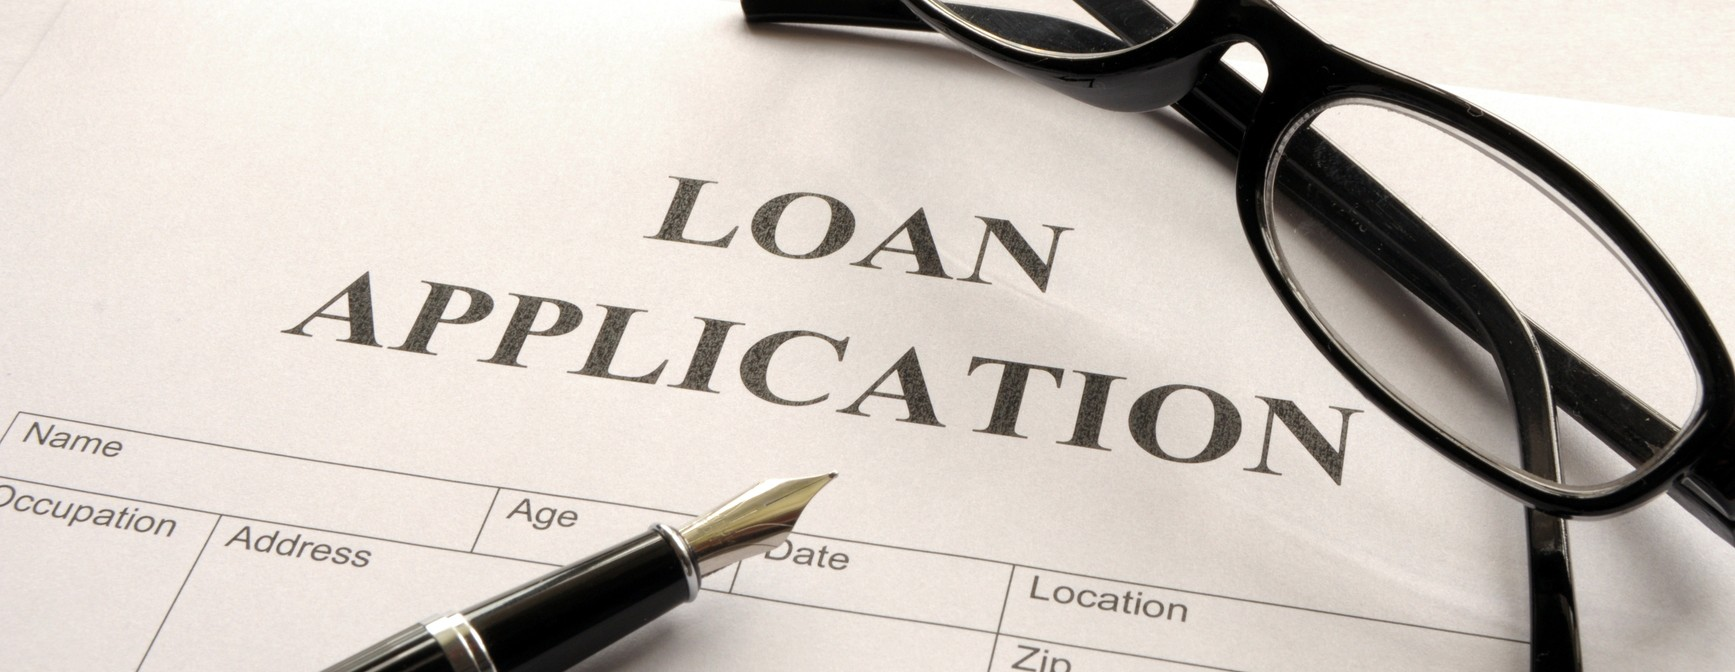 How To Apply For Apply For Small Personal Loan Online?